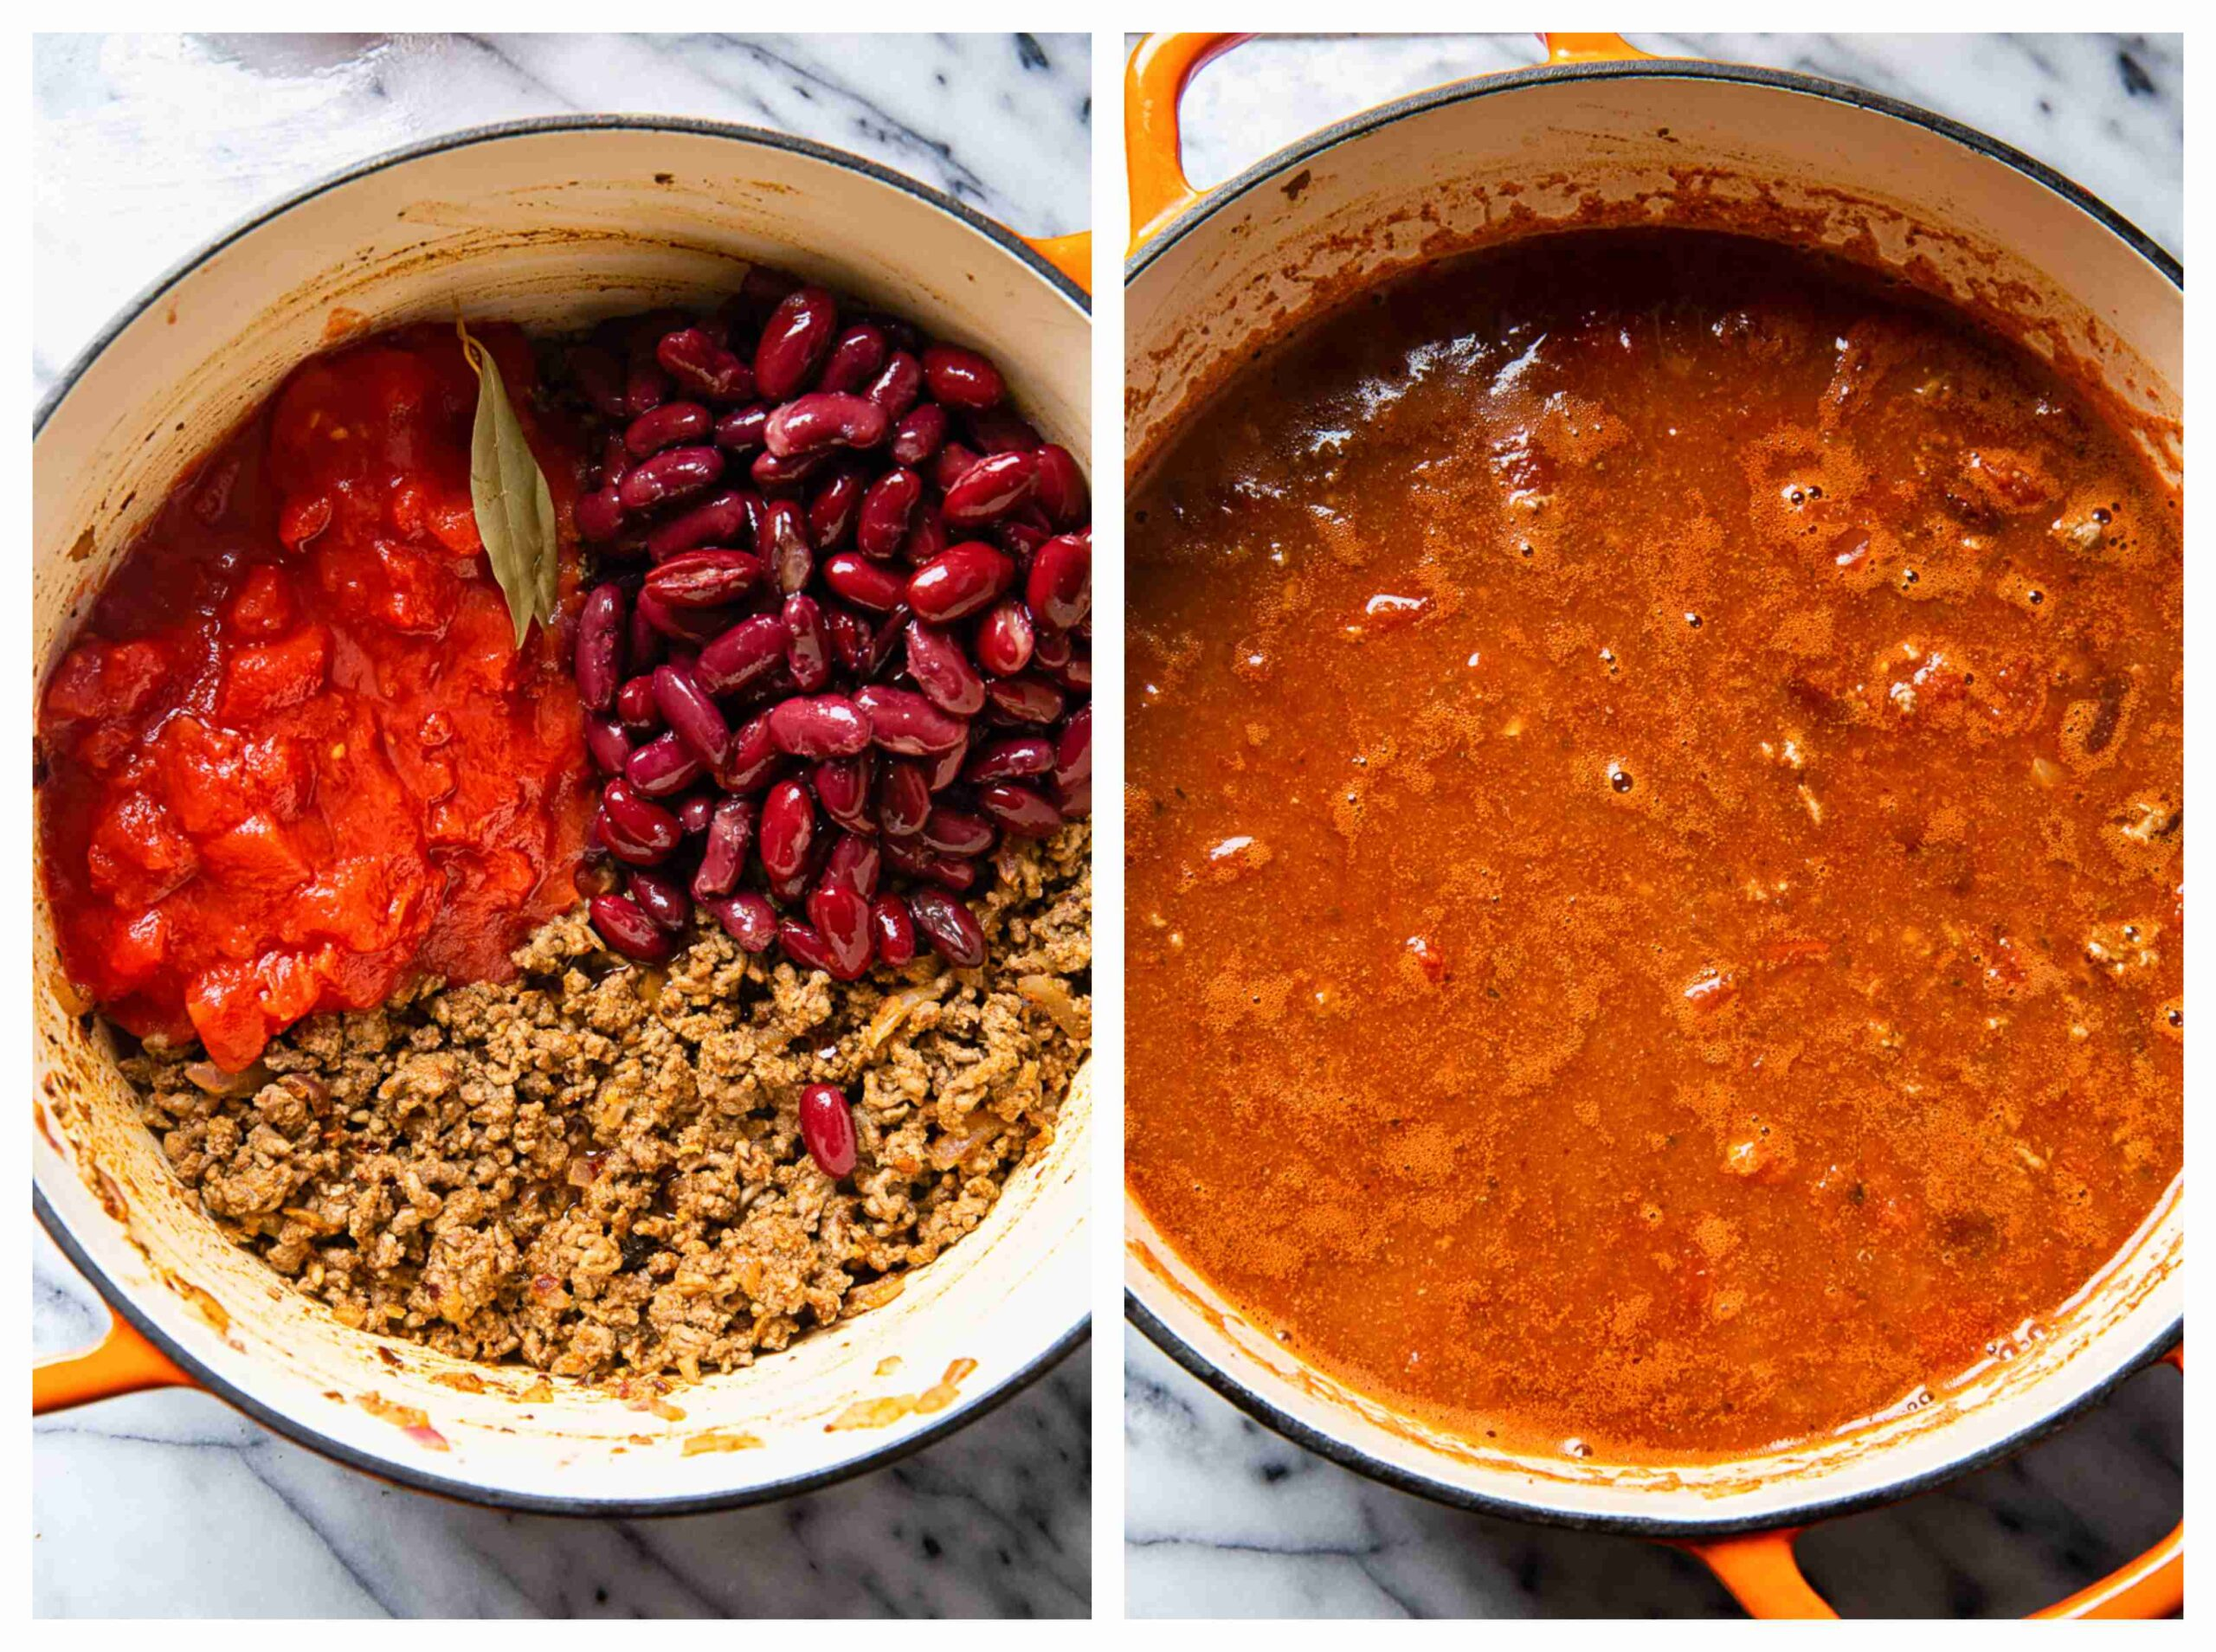 chili making process collage images